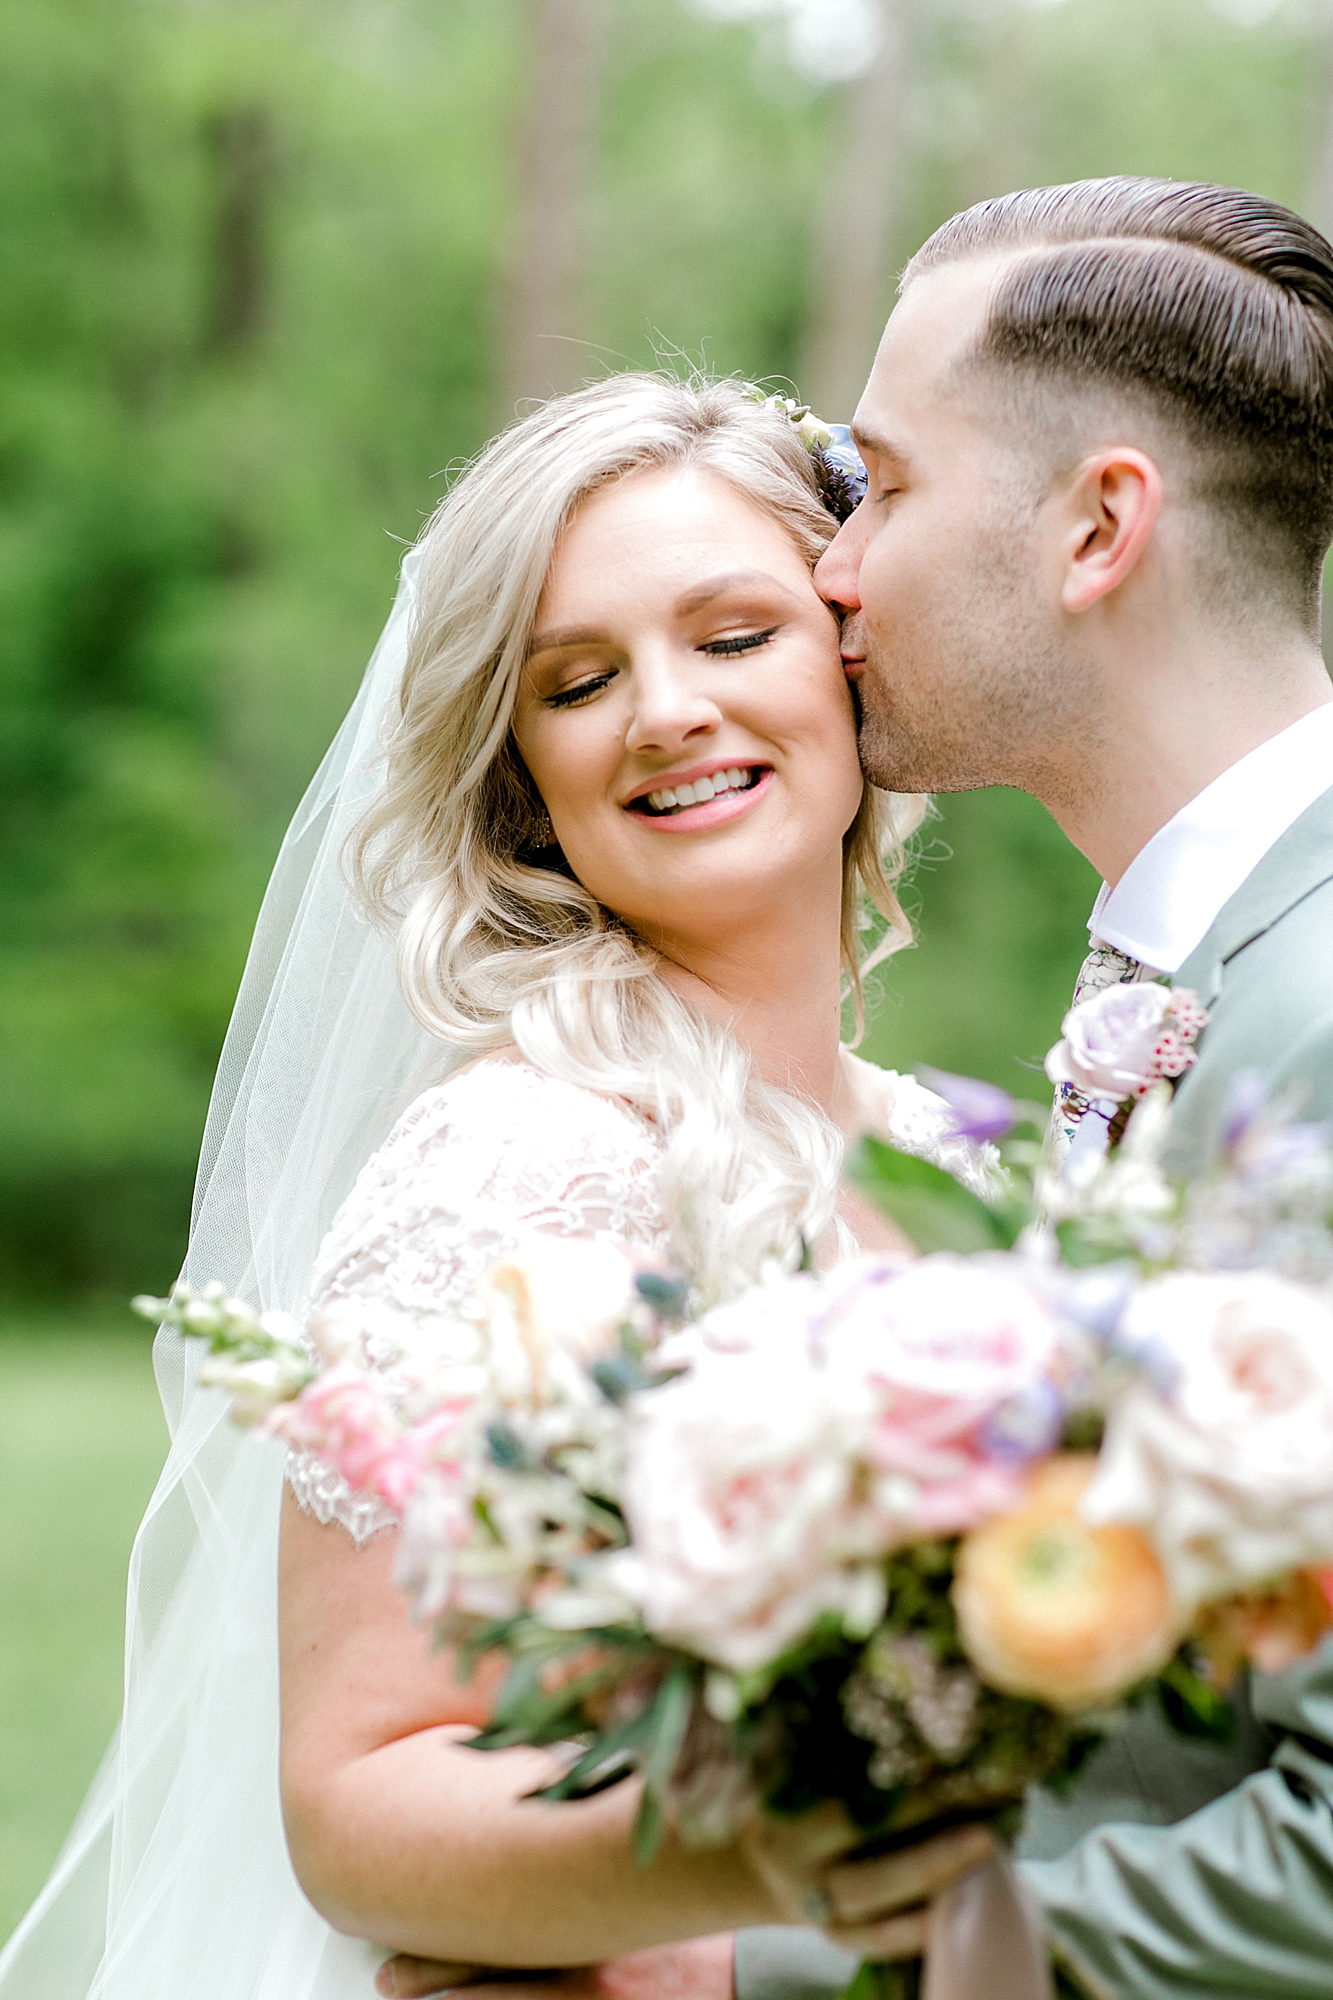 Intimate and Sweet Estate Wedding Photography by Magdalena Studios 0022